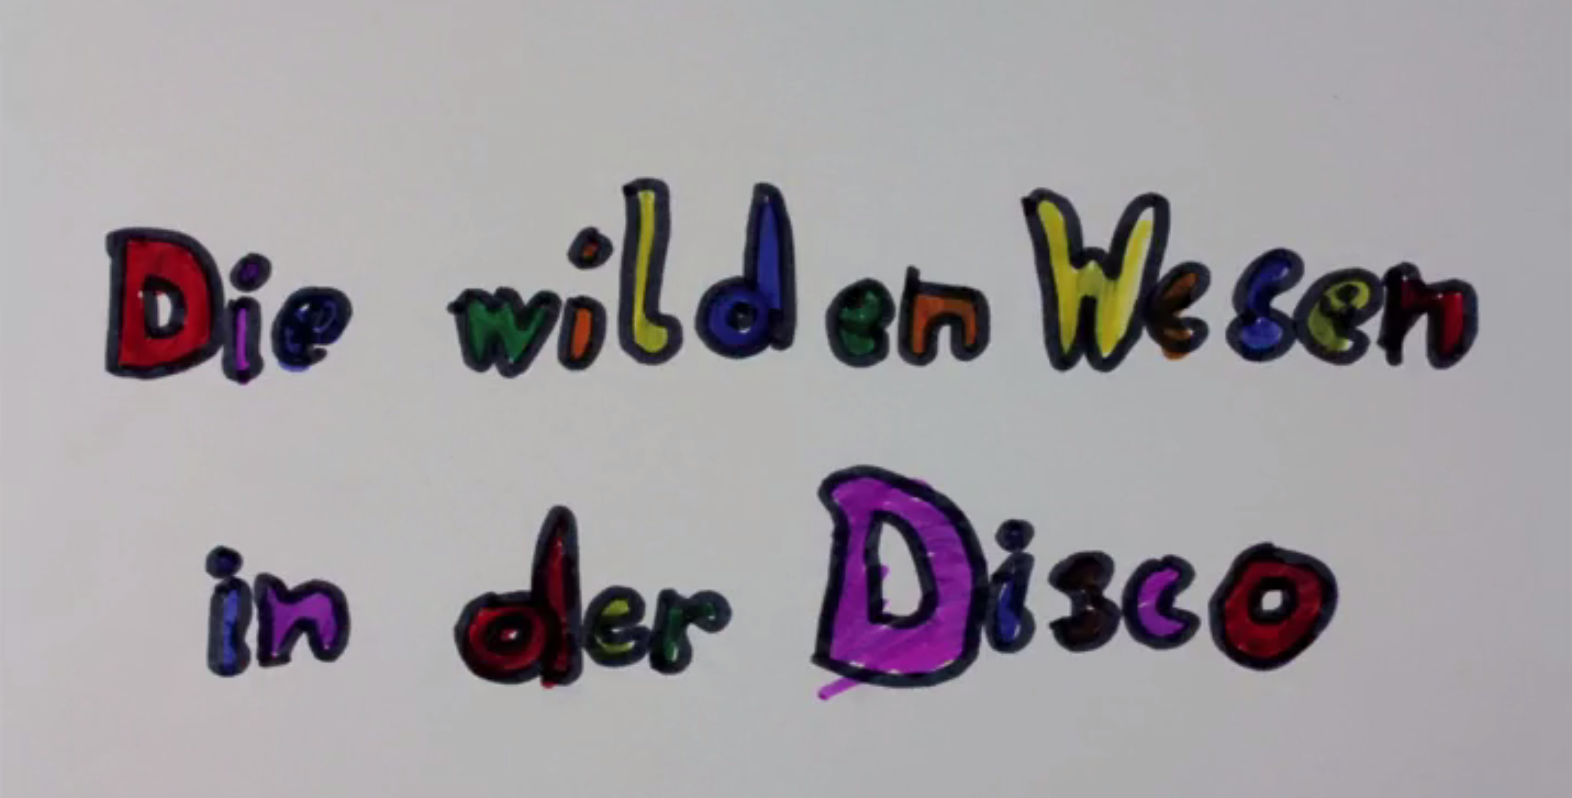 Wilde Wesen in der Disco